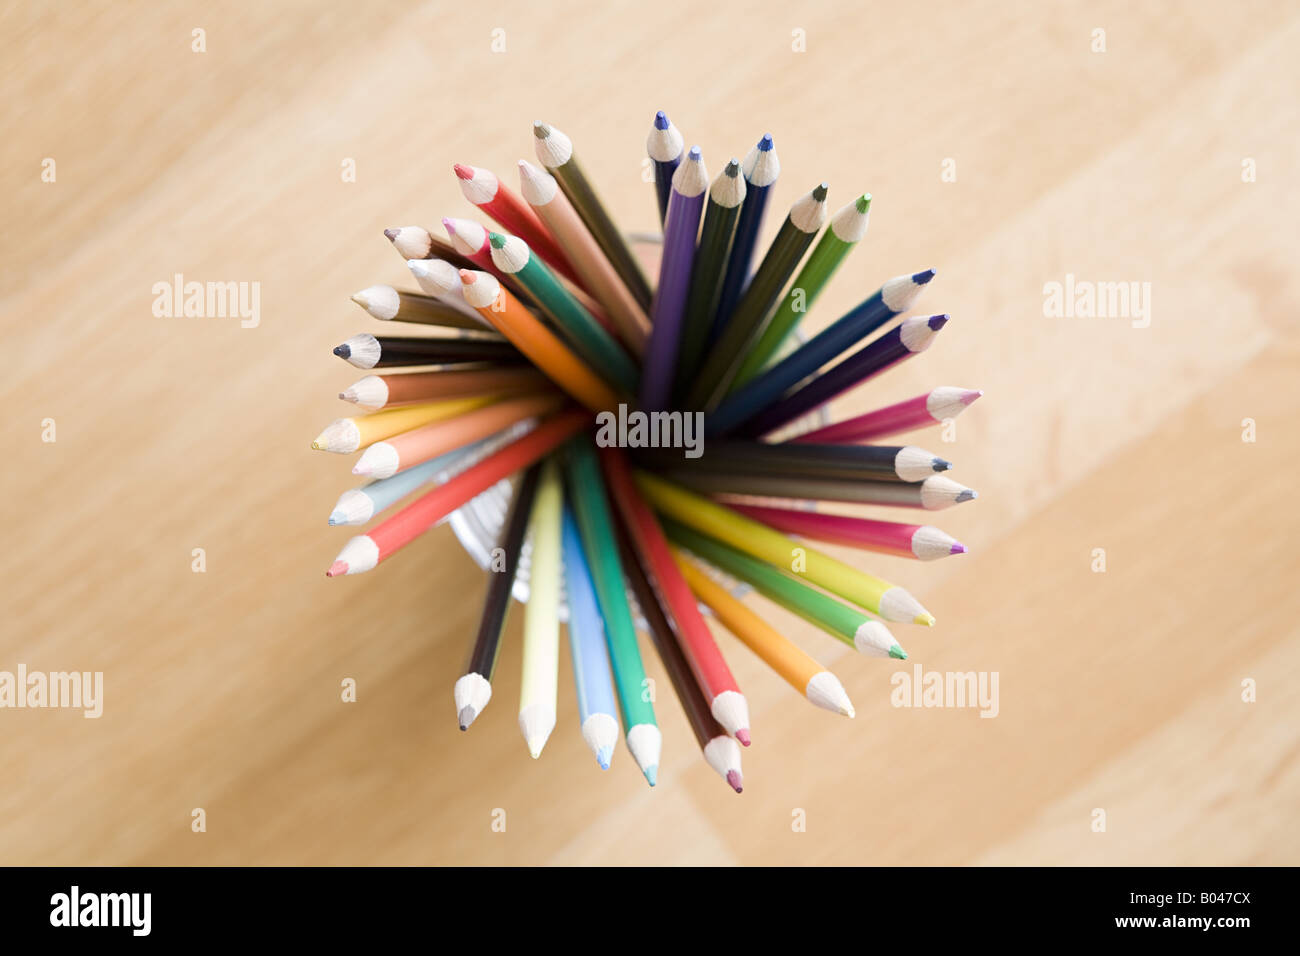 Coloured pencils - Stock Image